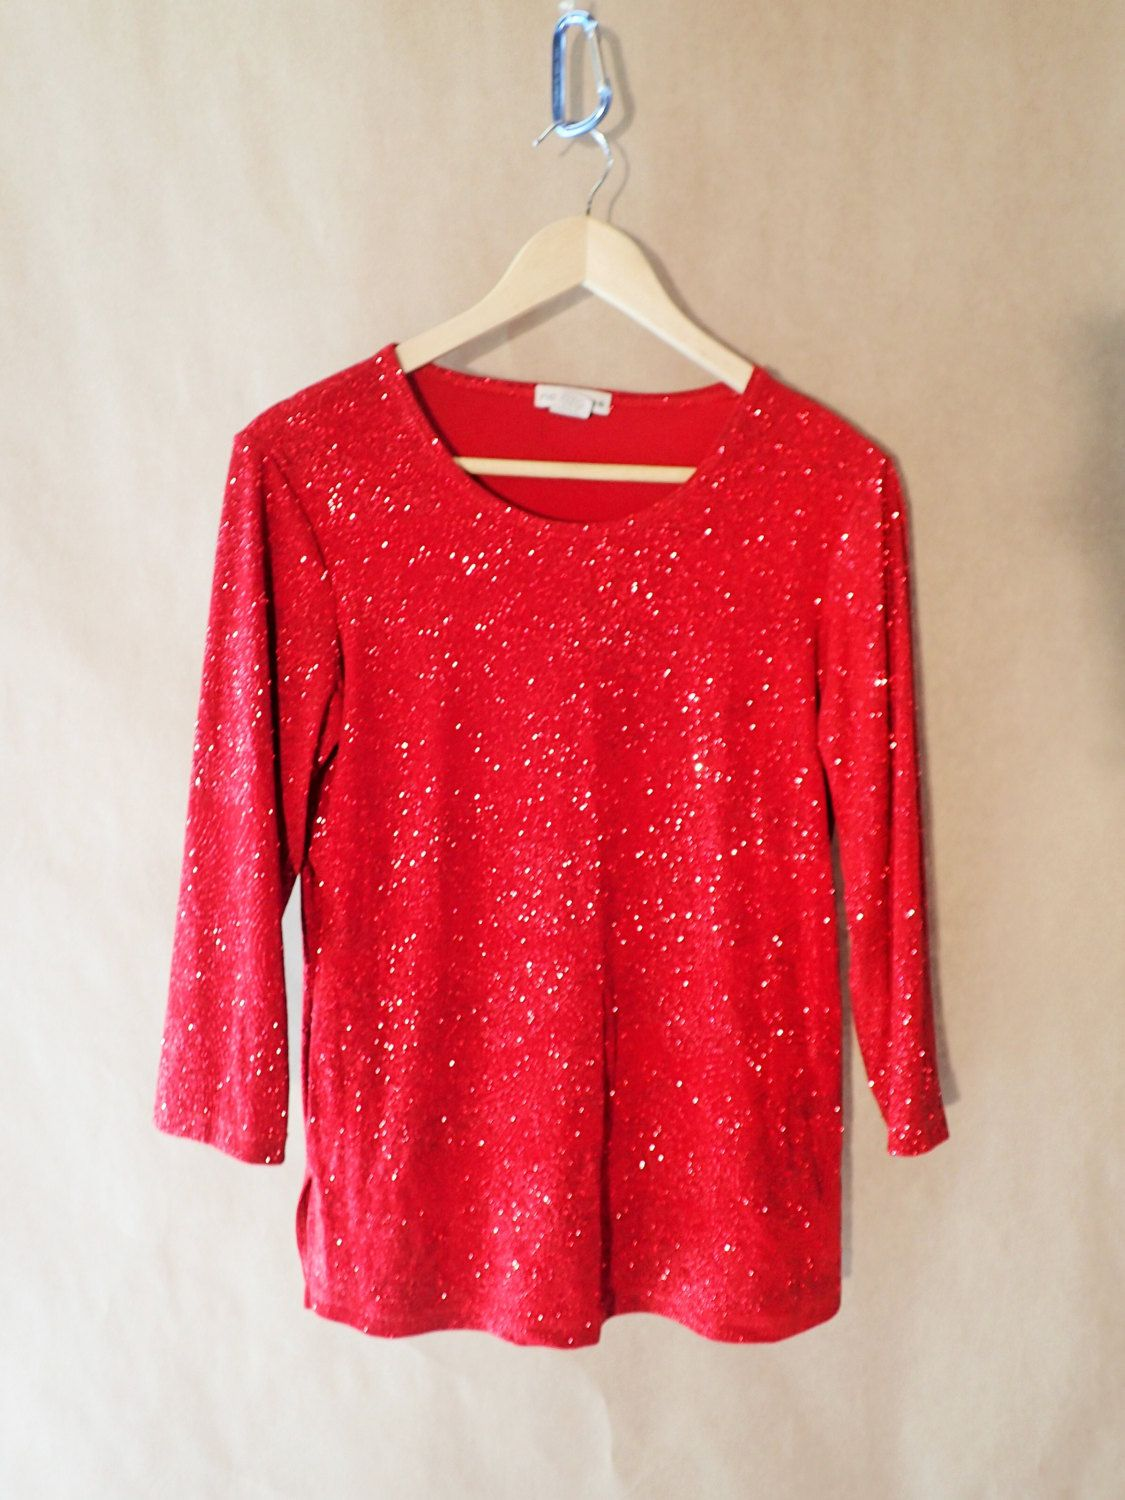 4c43b26310ad0 Vintage Red Shiny Sparkly Glitter Womens Top Shirt Notations - Christmas  Holiday Long Sleeved Blouse- Ugly Sweater Party by DOINGITSOBER on Etsy